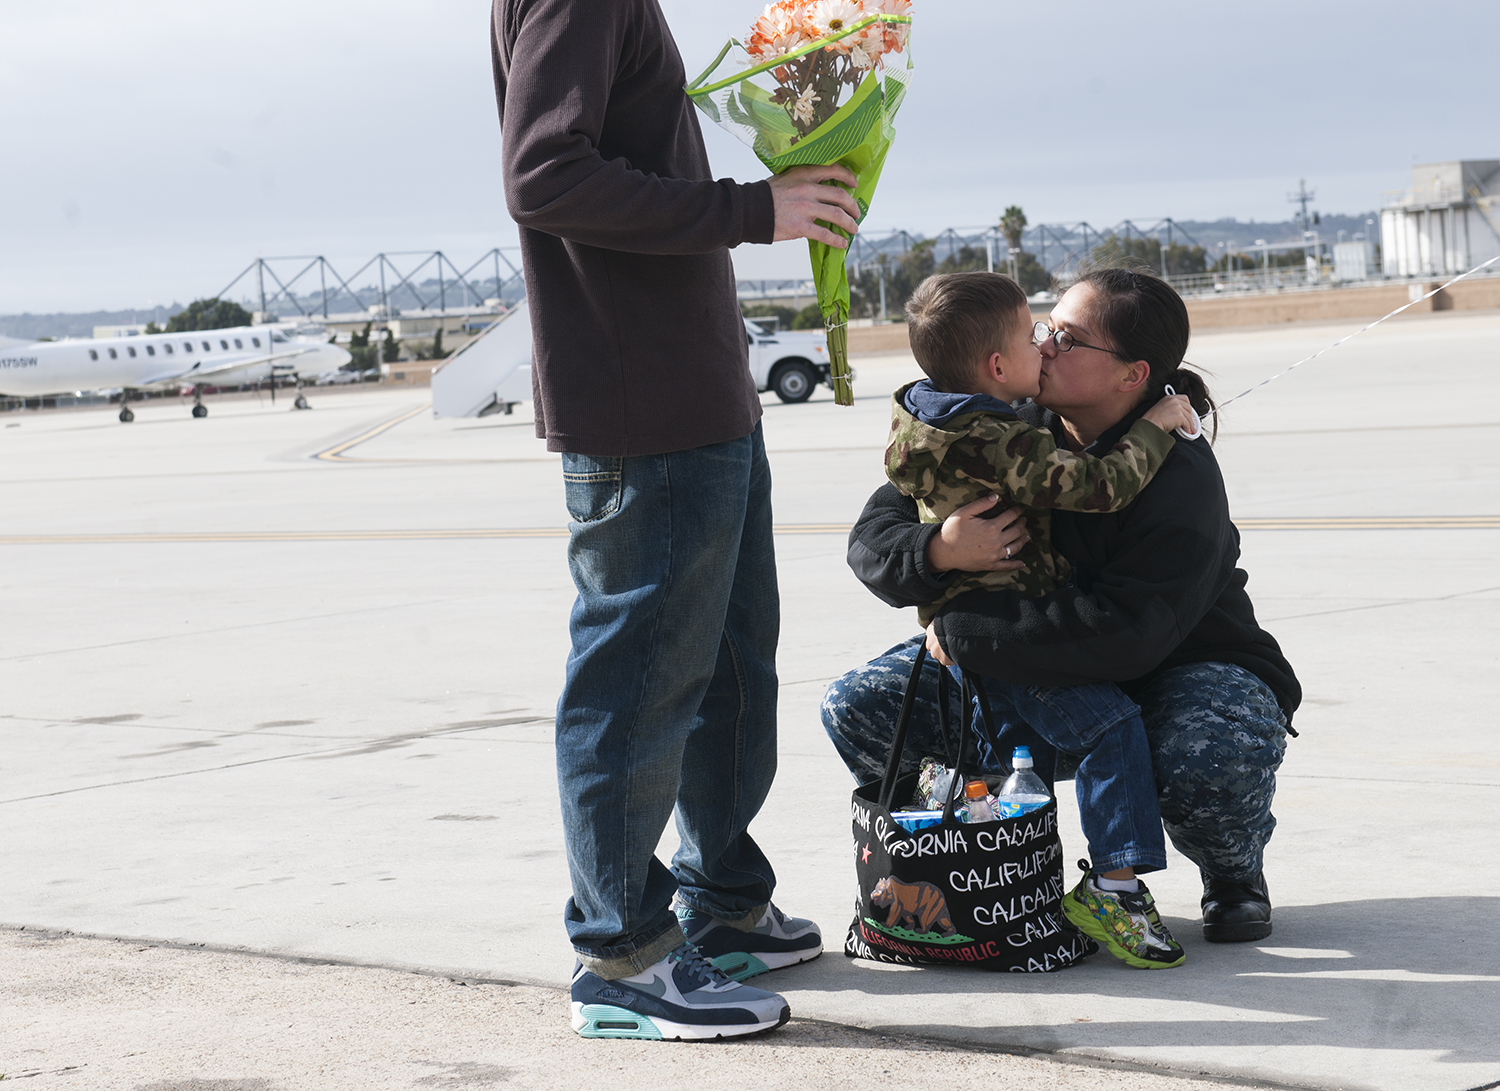 Electronics Technician 2nd Class Reane Clark greets her son after returning home from a deployment around South America. US Navy Photo